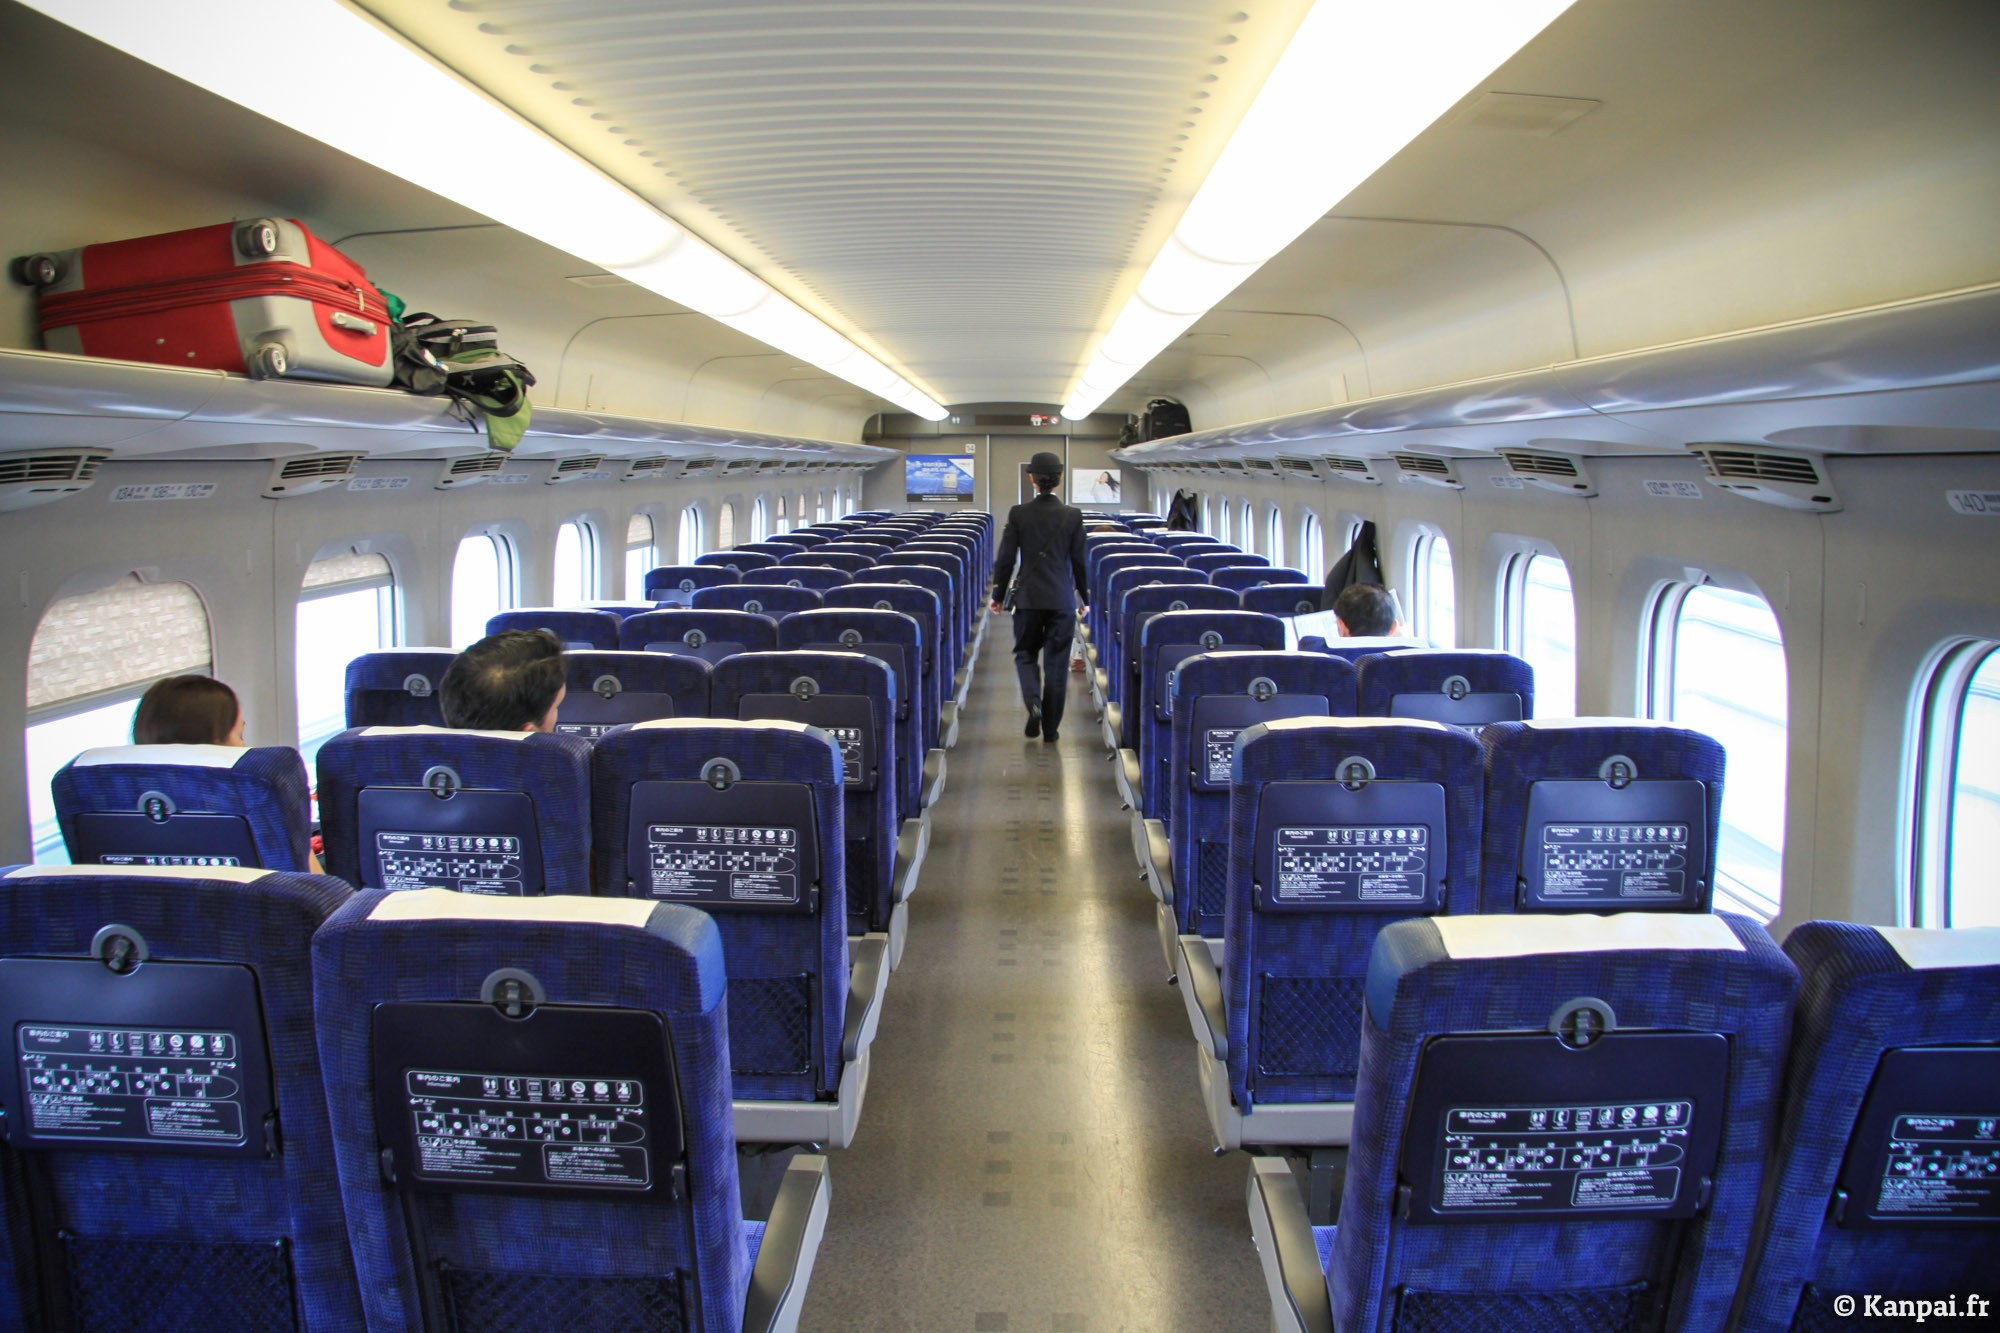 Interieur Trein Comment Japan Rail Botte Le Train De La Sncf